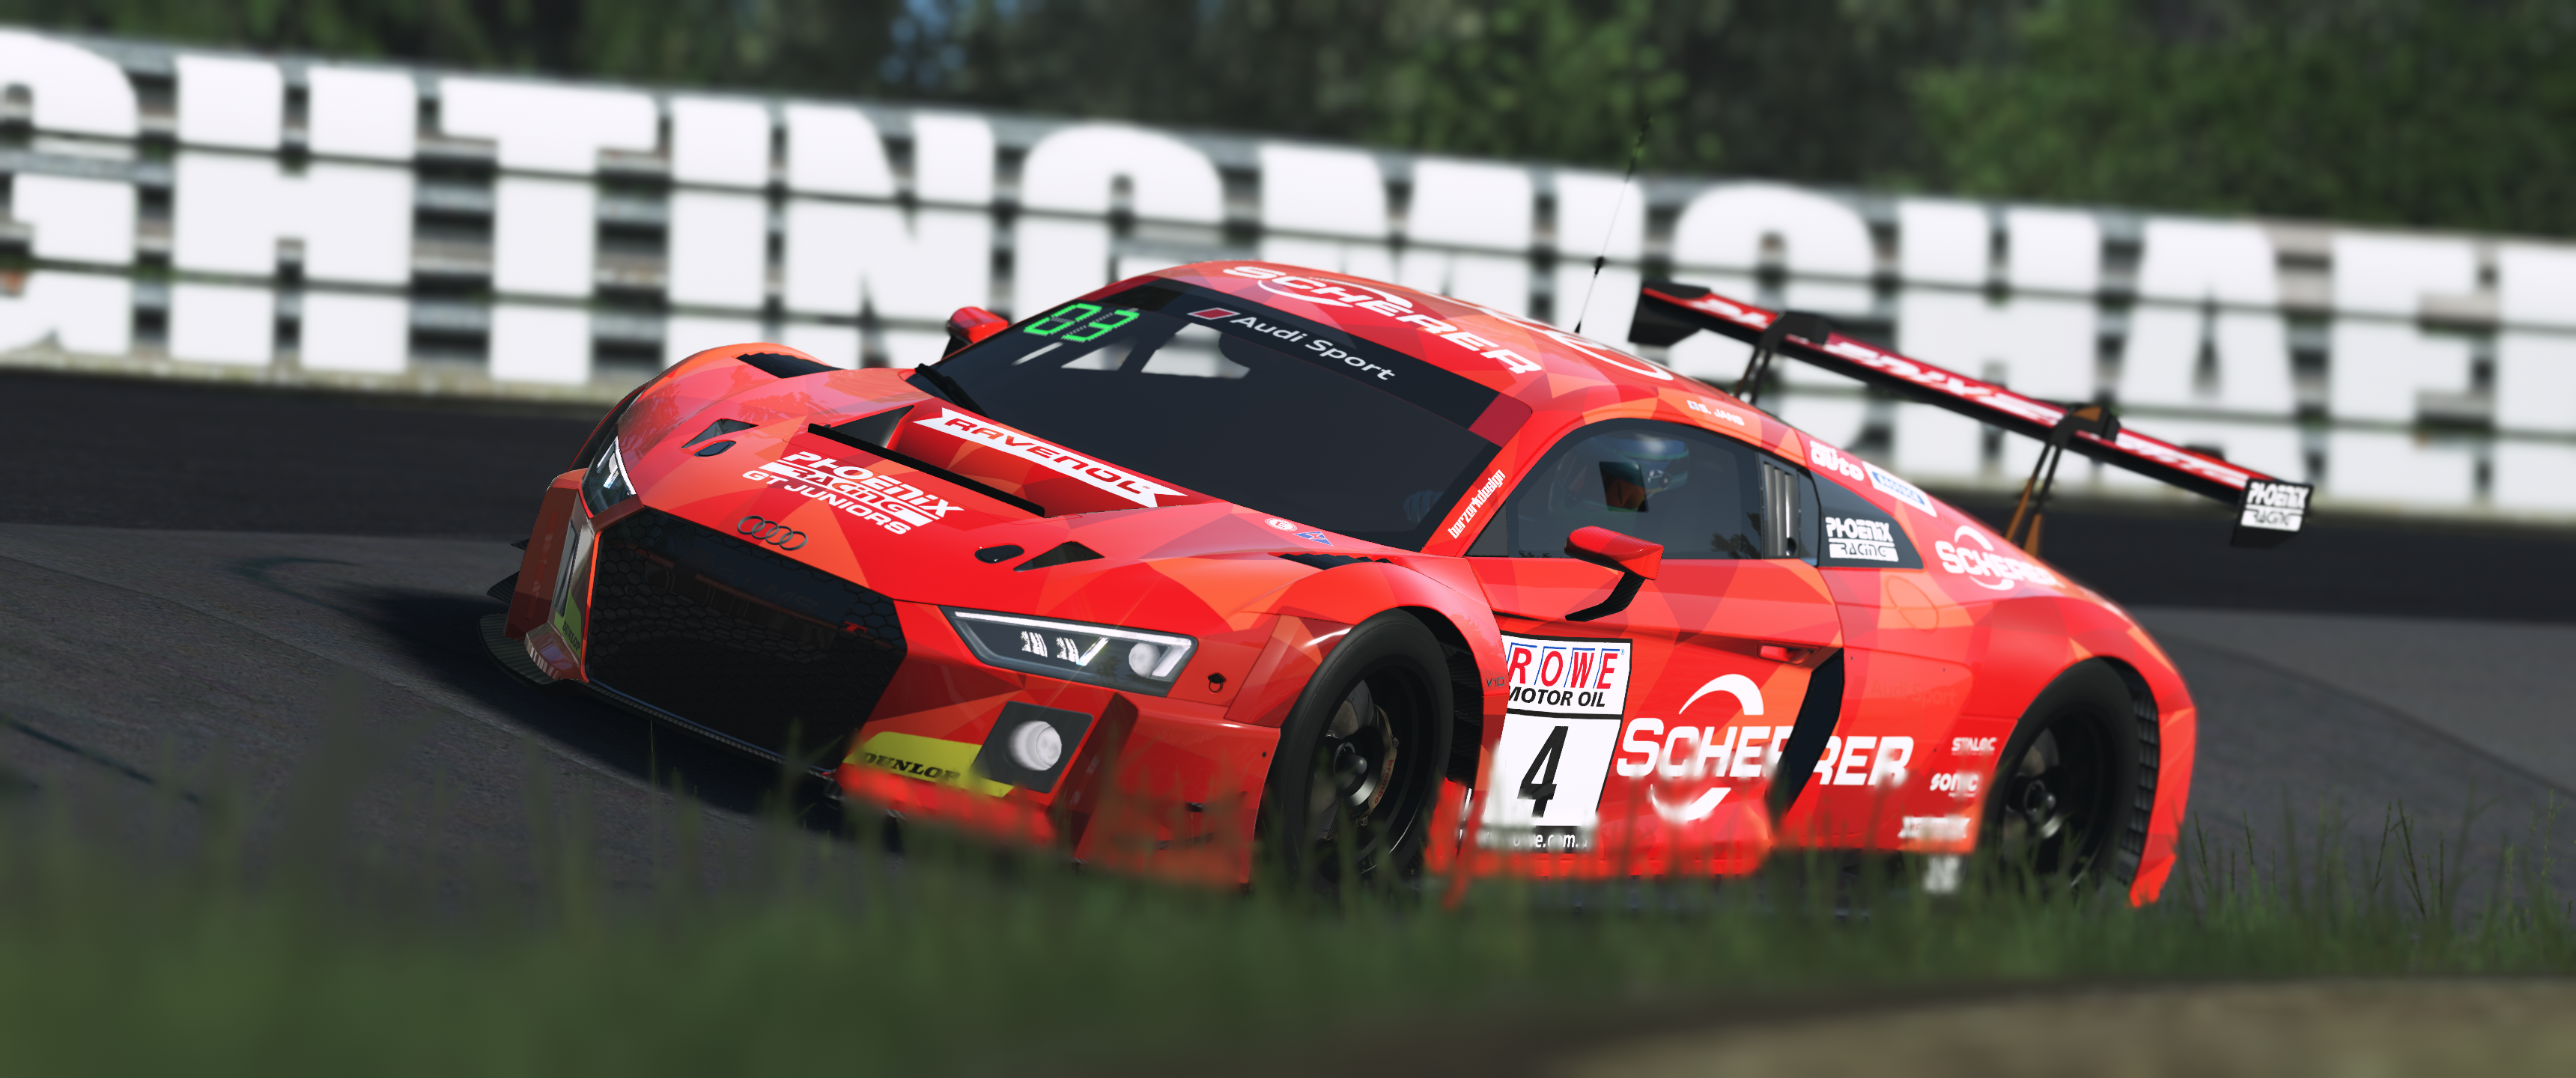 rFactor2 2019-02-10 19-00-26-51.png